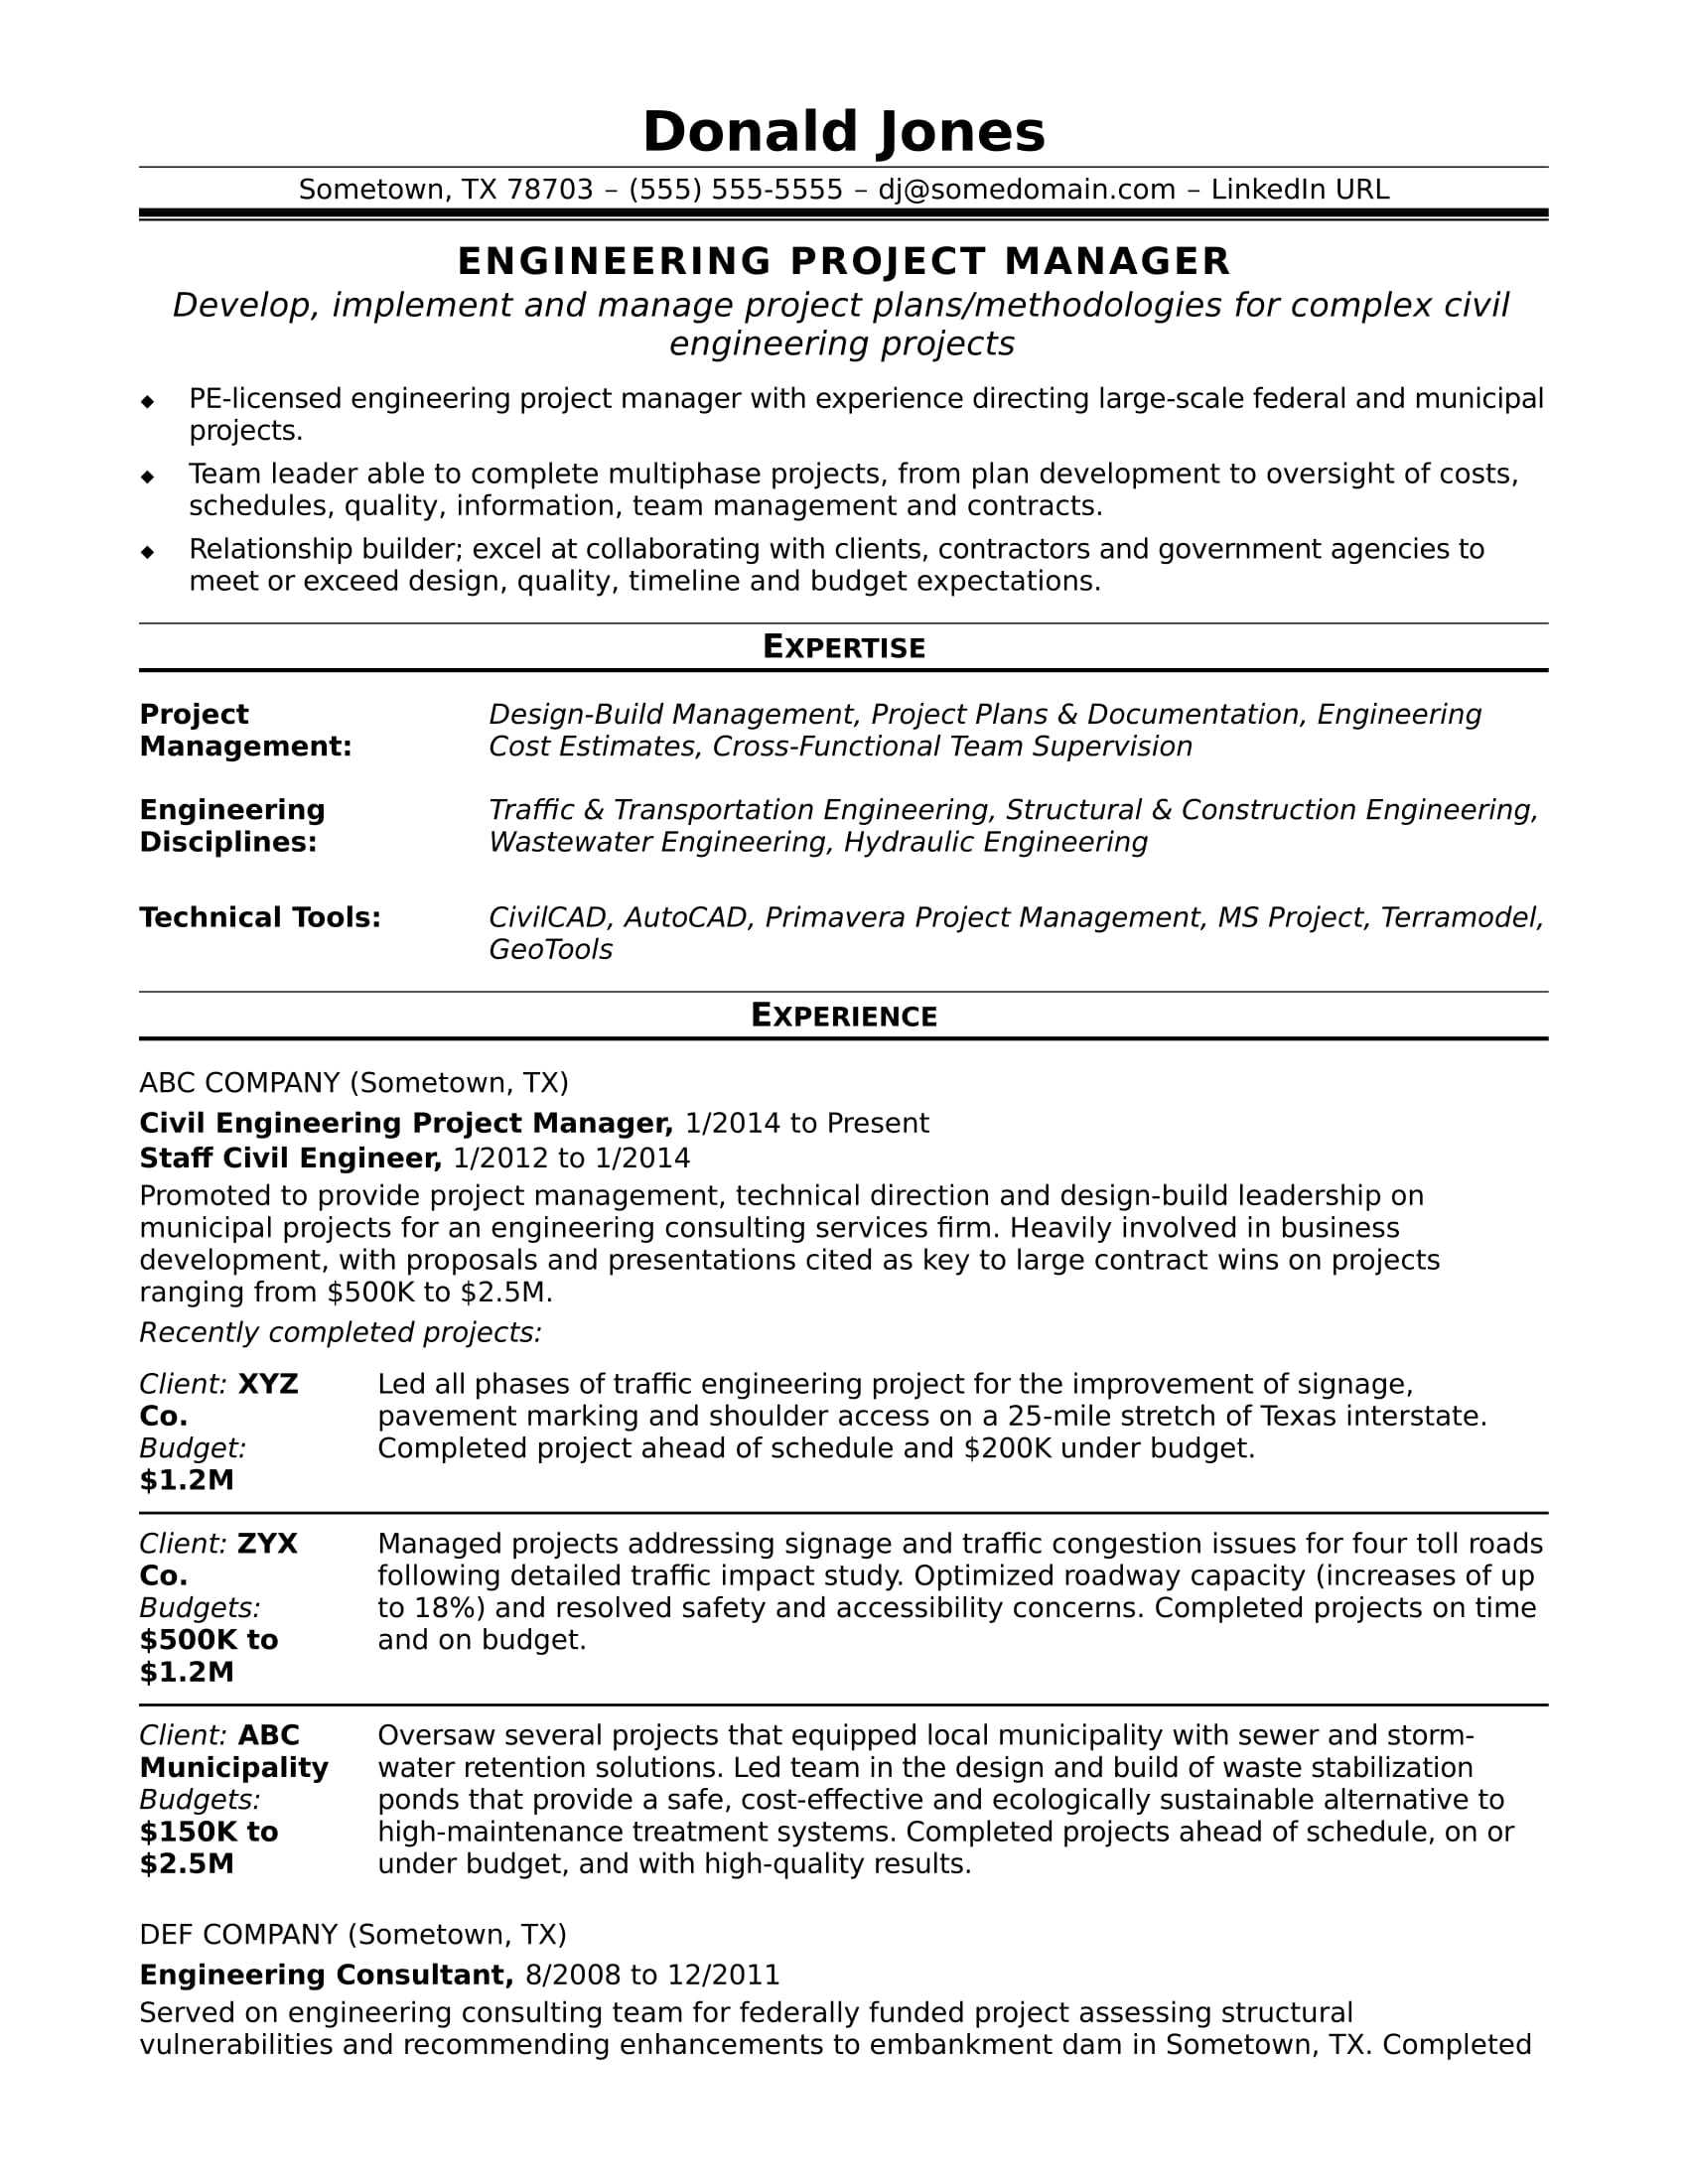 sample resume for a midlevel engineering project manager - Sustainability Officer Sample Resume